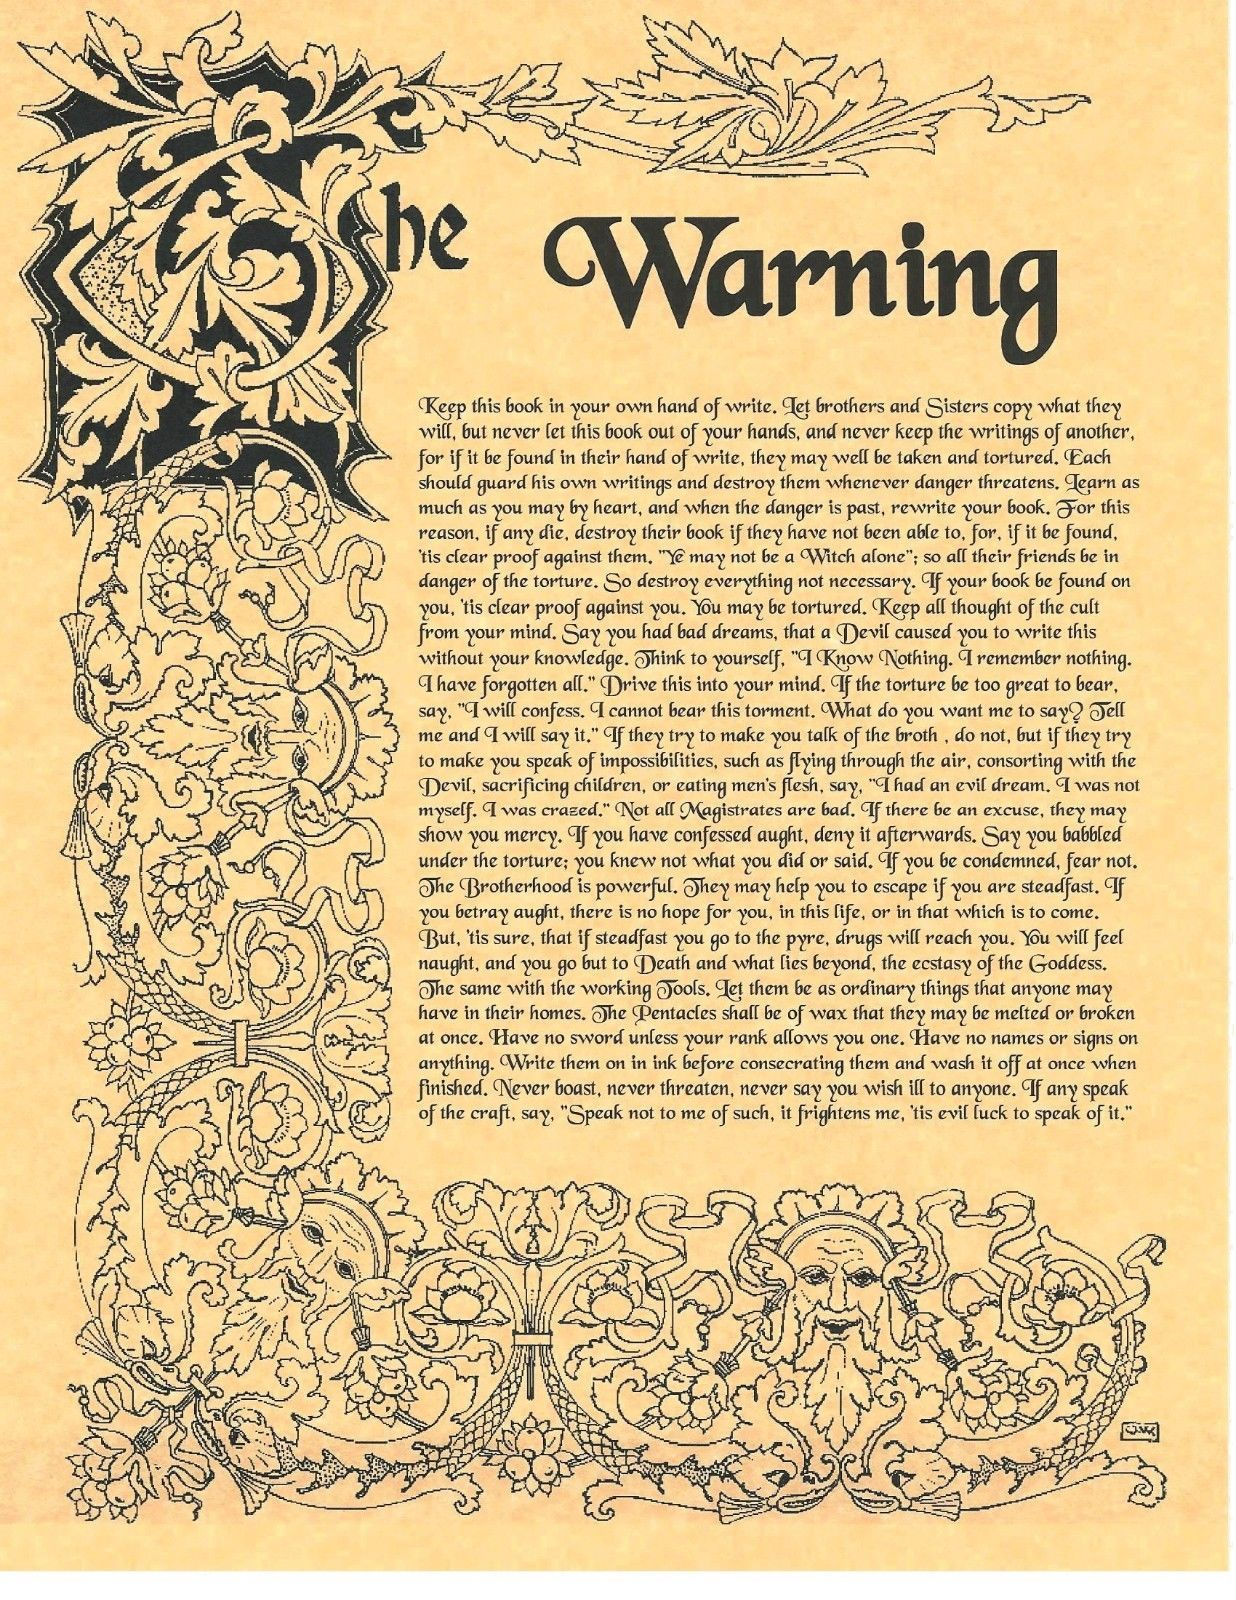 Book Of Shadows Spell Pages Warning About Wicca Wicca Witchcraft Bos Witch Spell Book Book Of Shadows Witchcraft Books